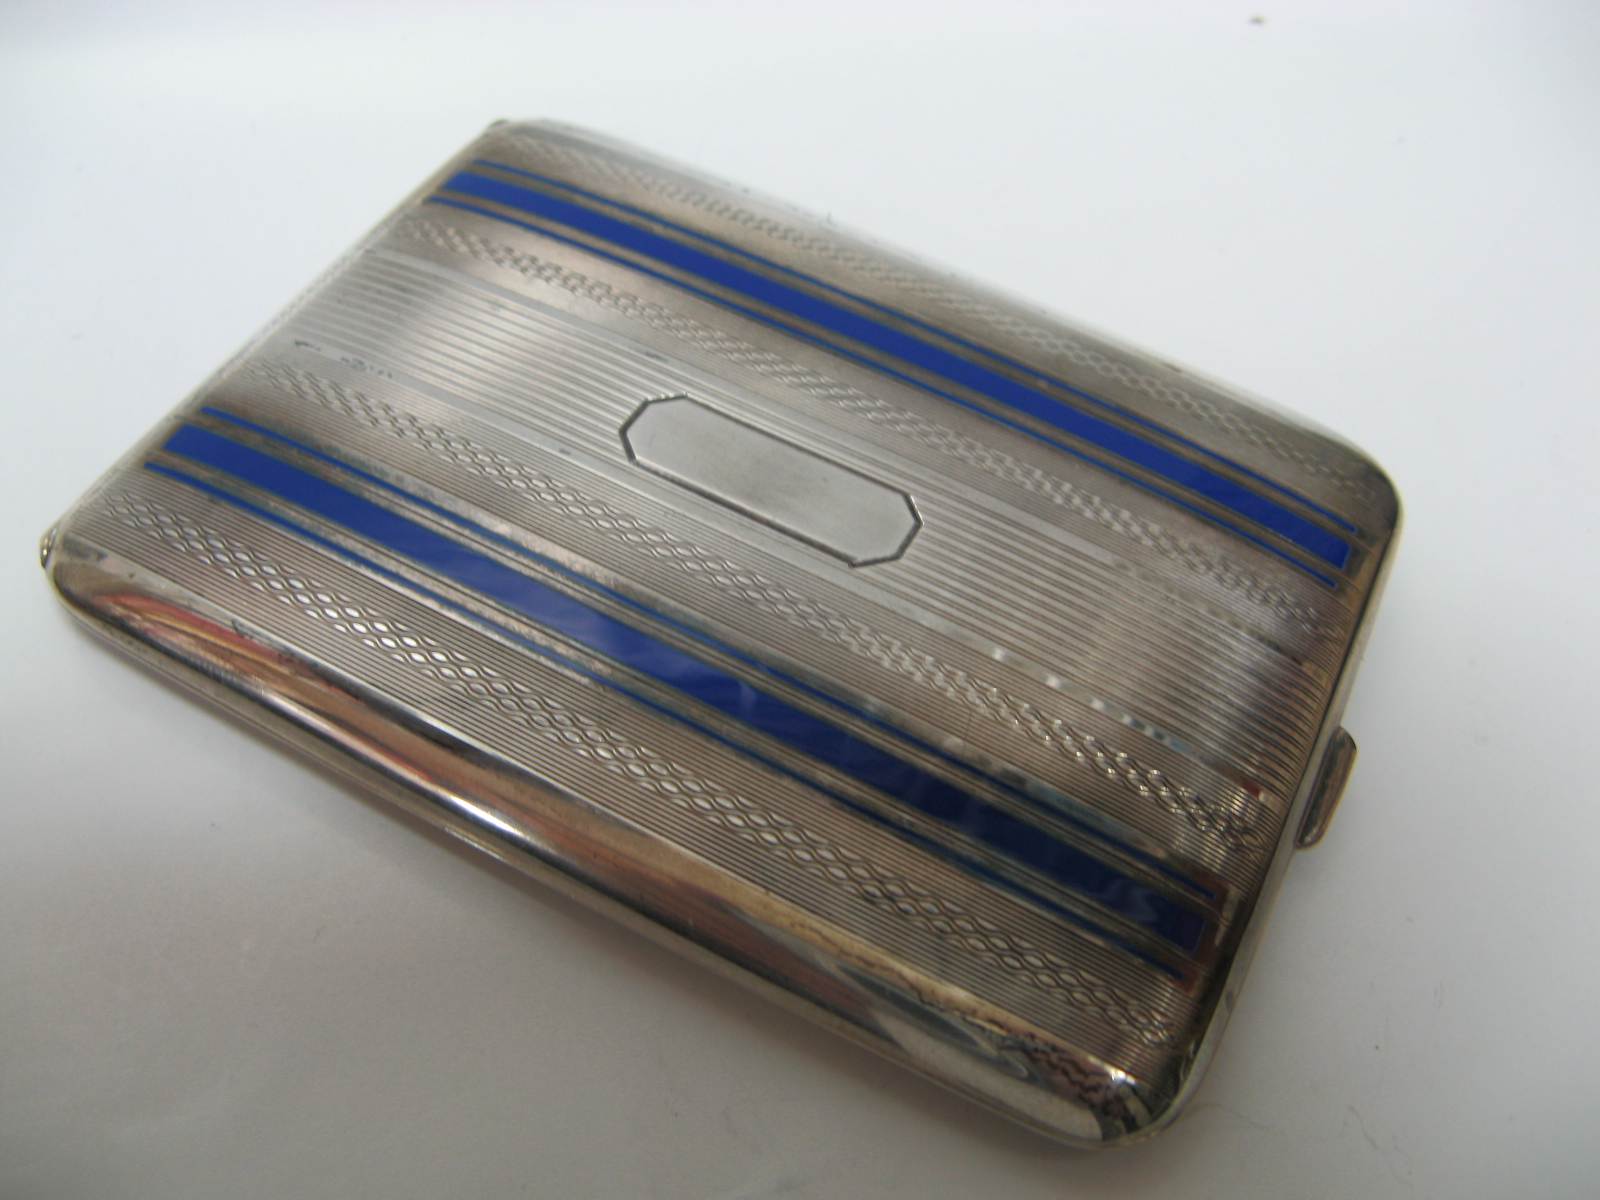 6774c7d62b49 Yutakaya  ELGIN sterling silver cigarette case unread items ...